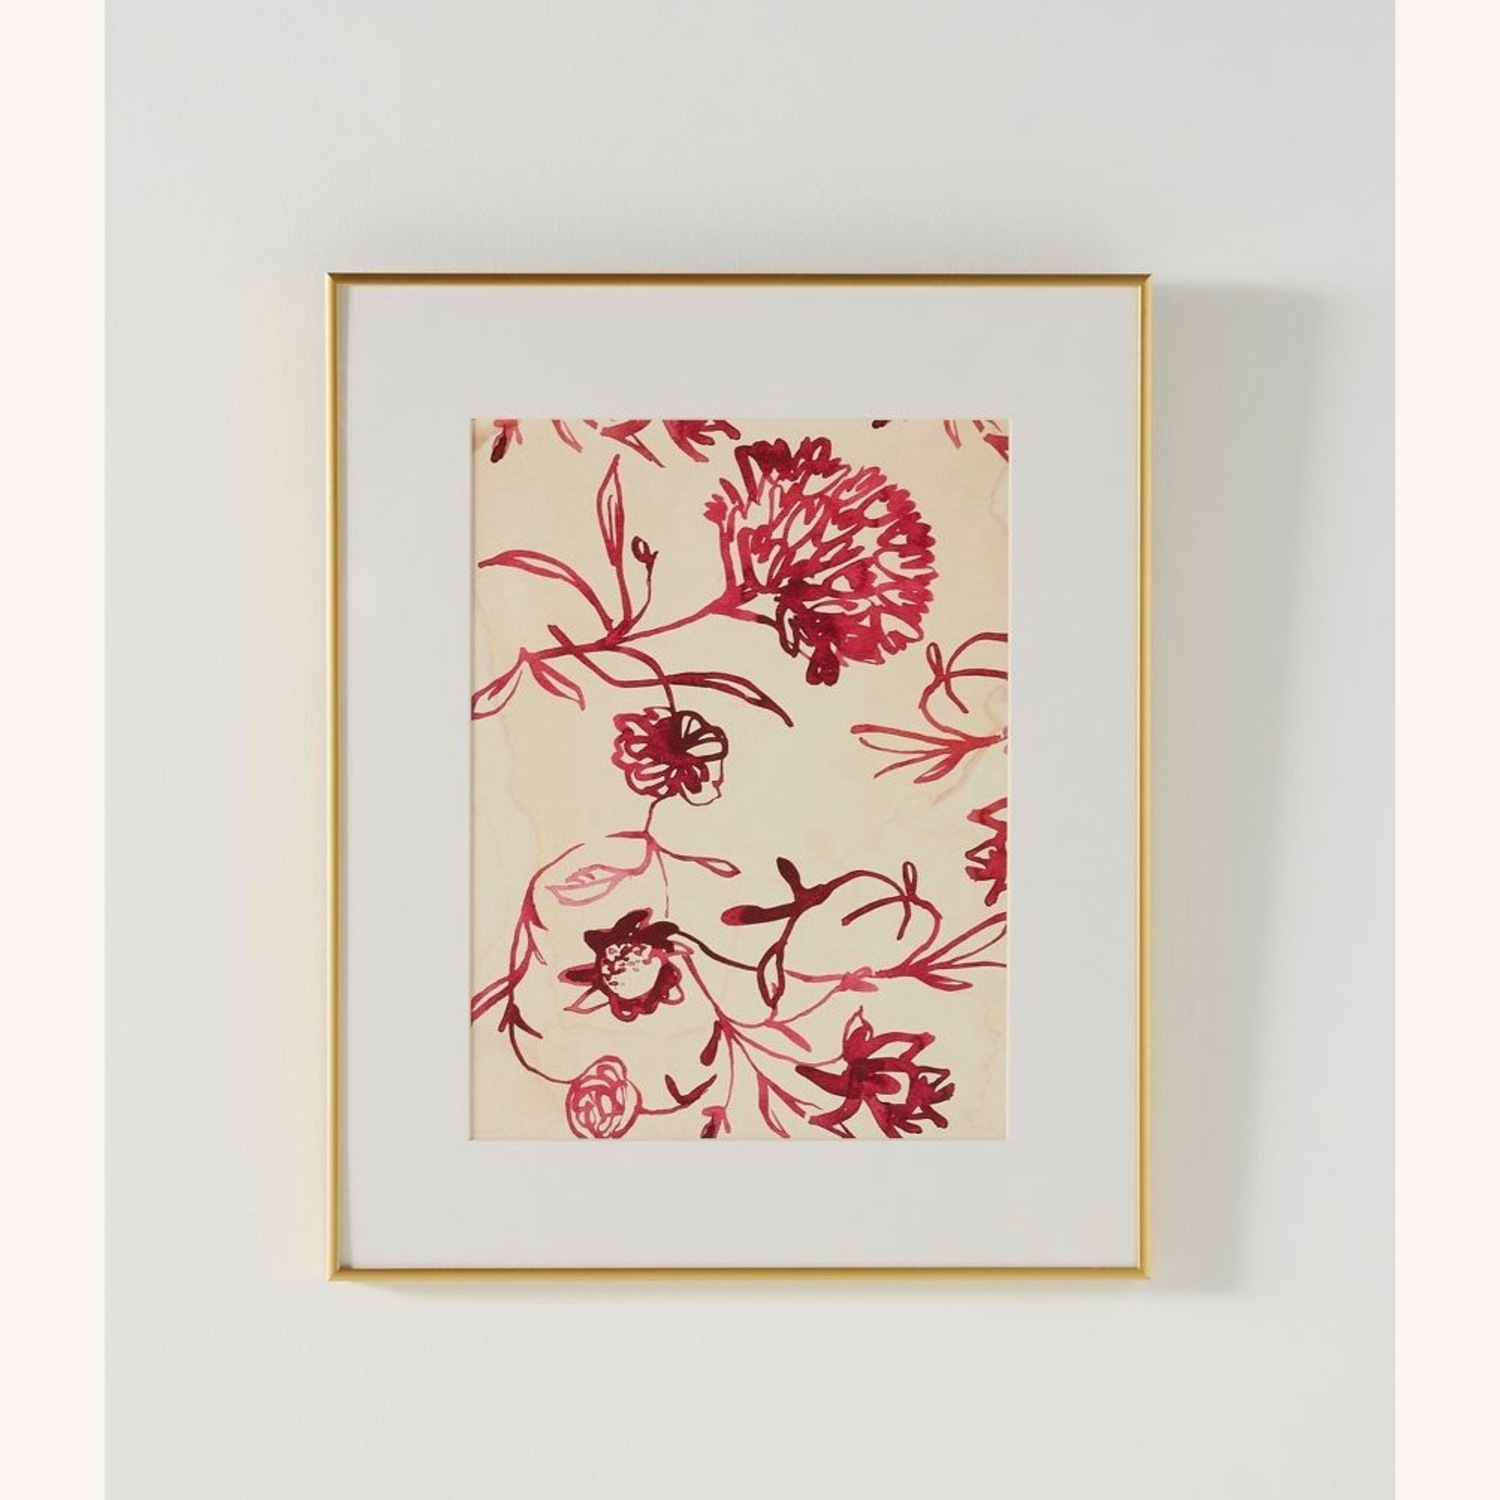 Pink Floral Watercolor Painting in Gold Frame - image-1